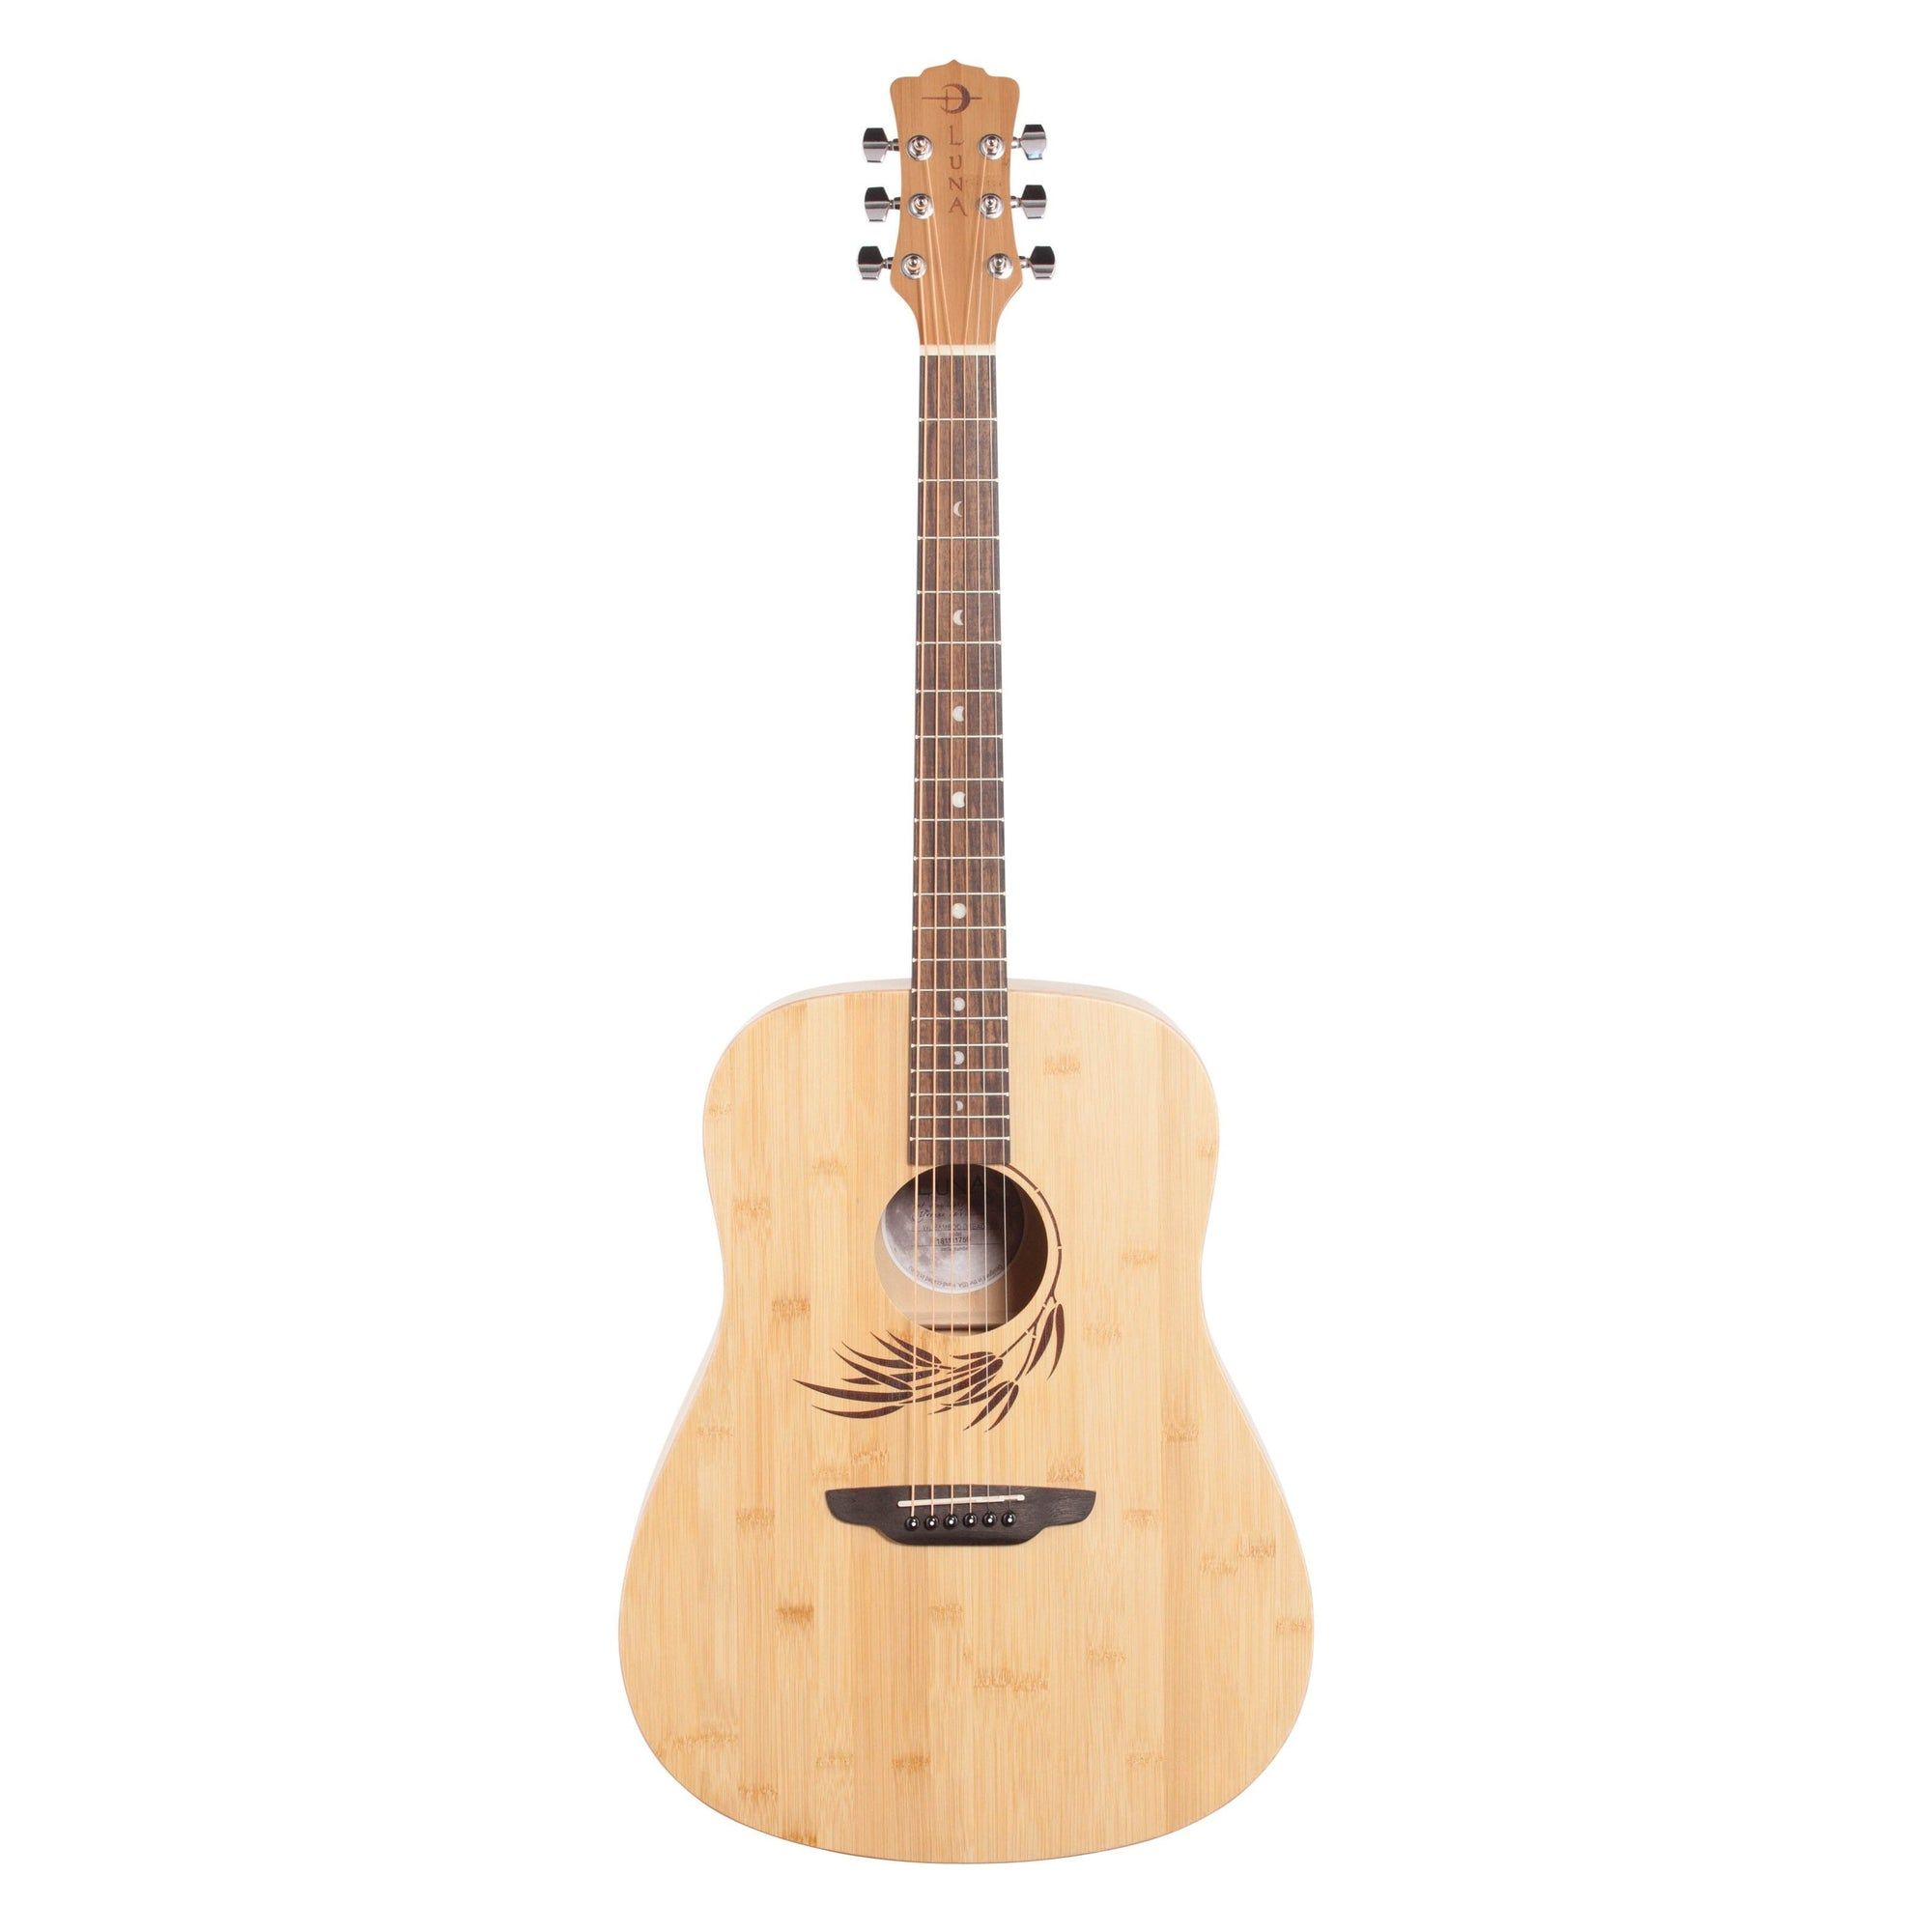 Luna Woodland Bamboo Dreadnought Acoustic Guitar